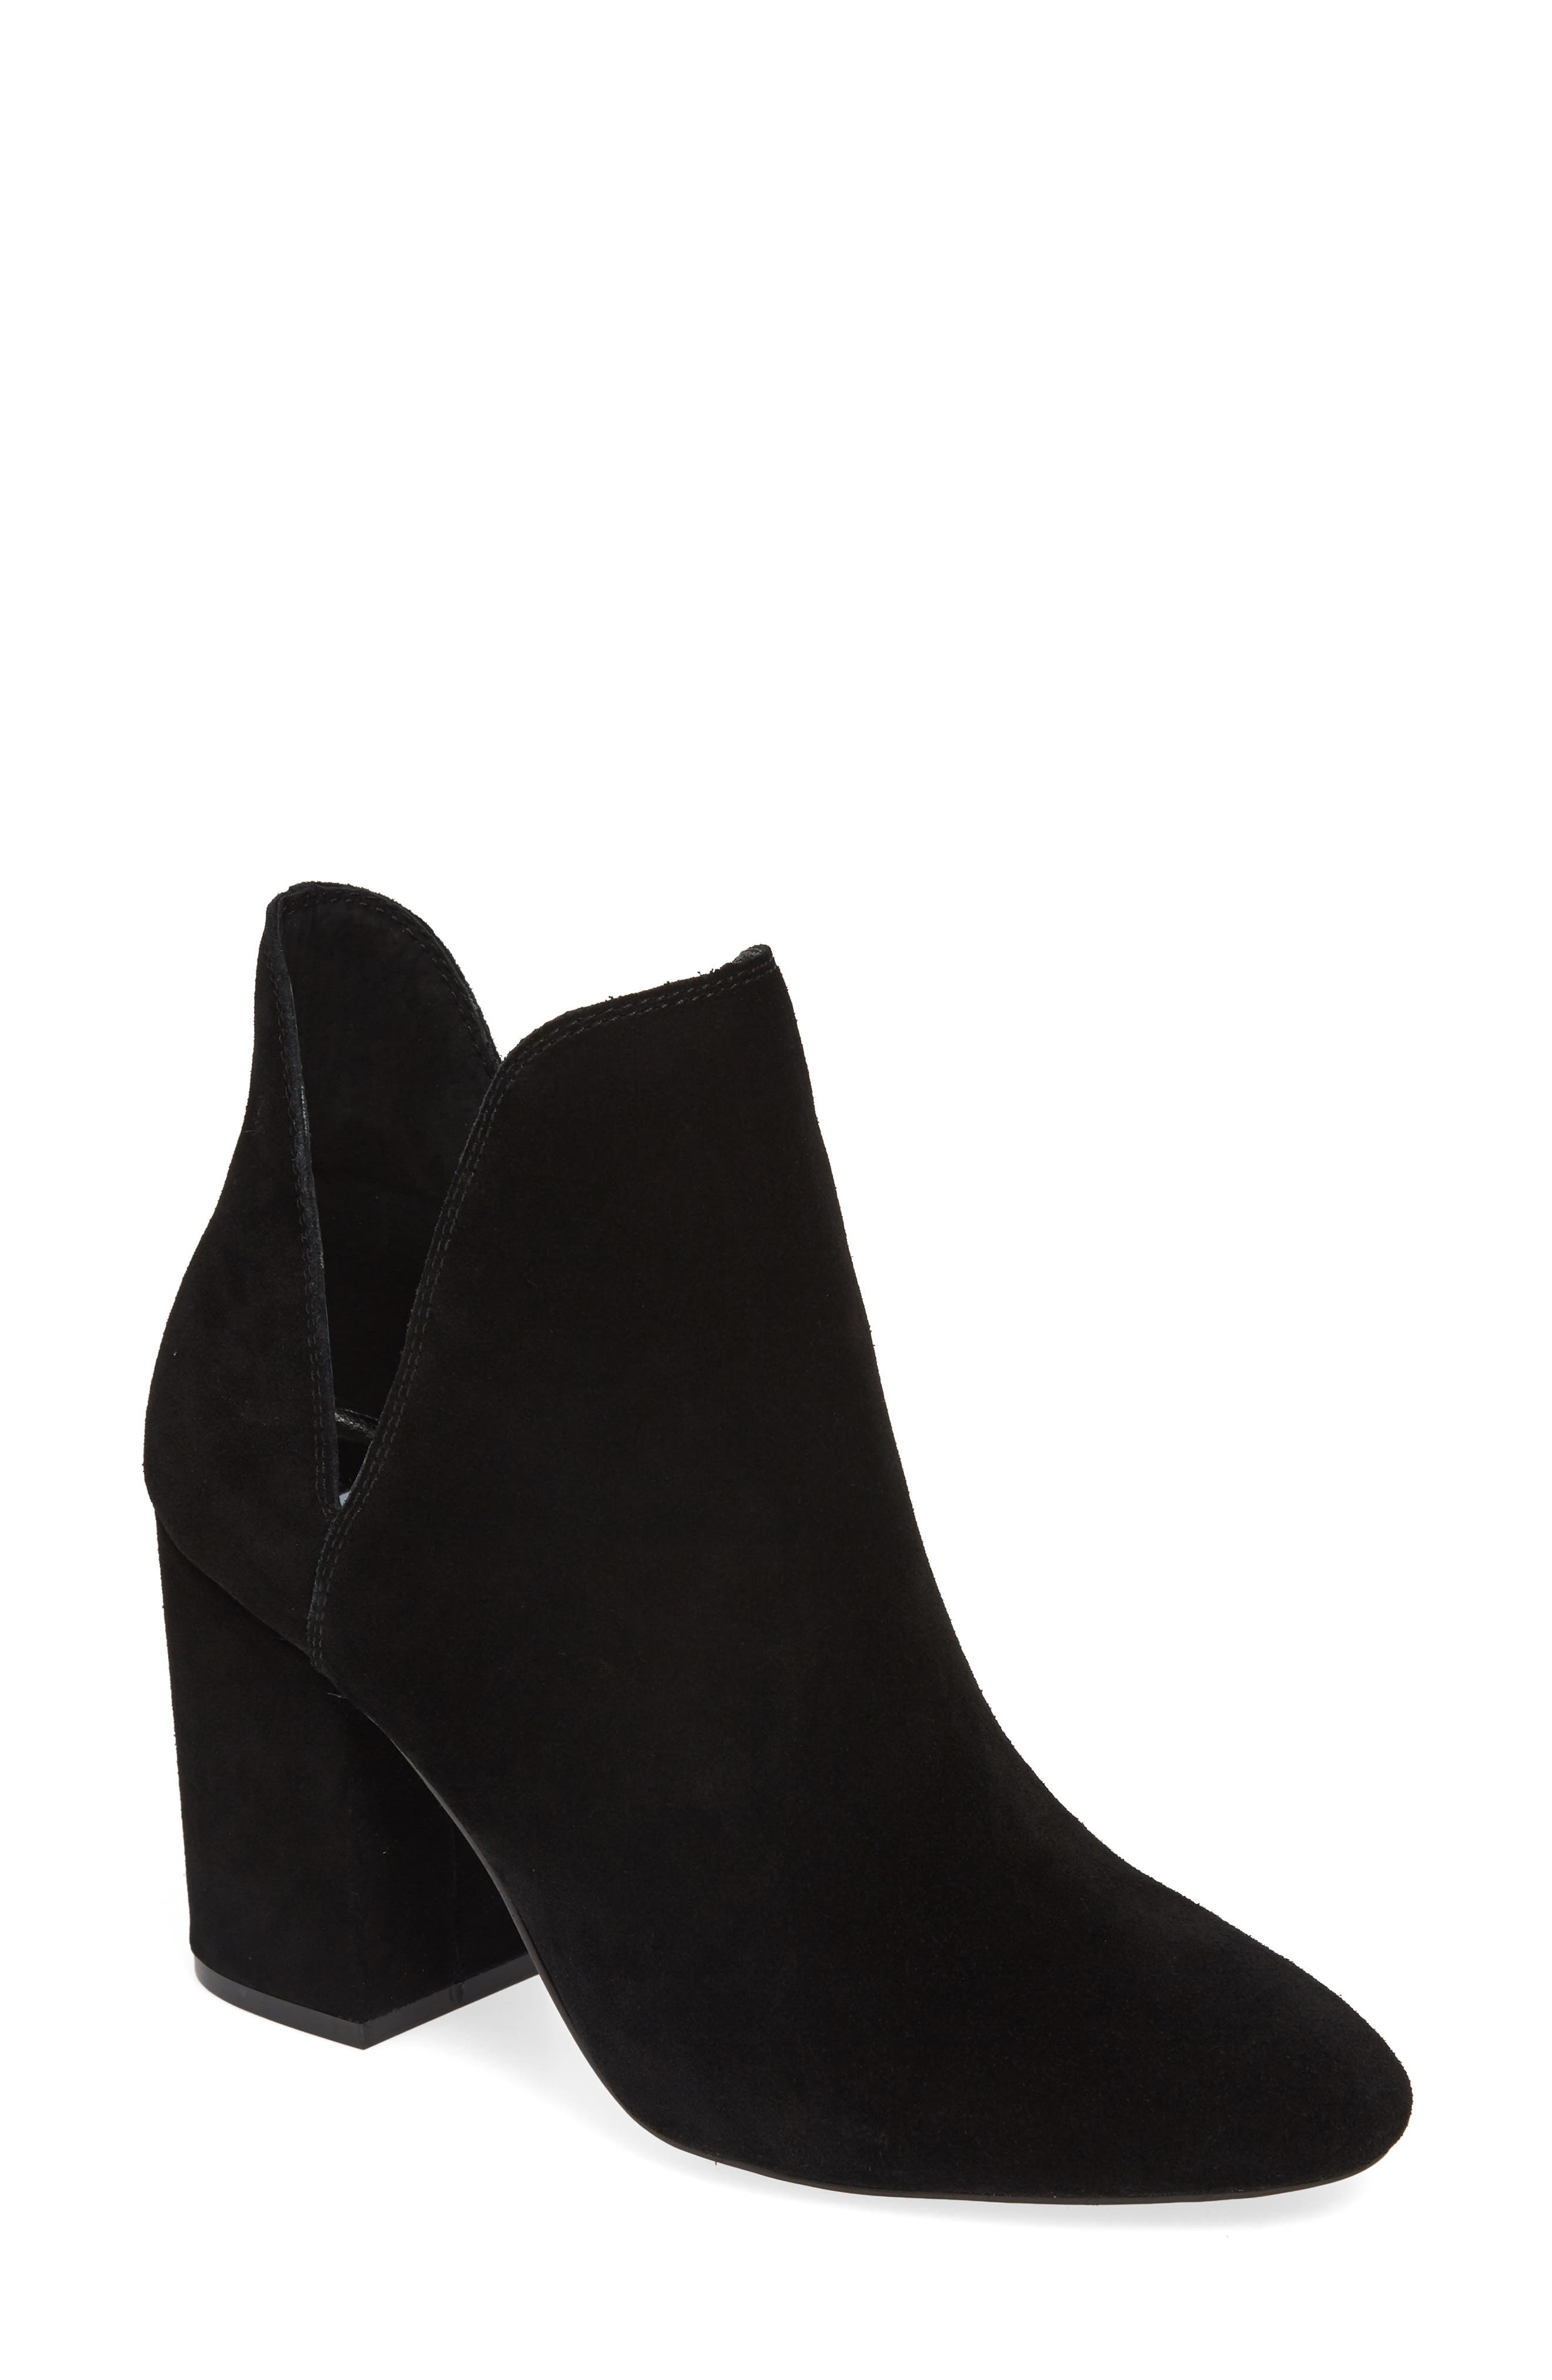 STEVE MADDEN, Rookie Bootie, Main thumbnail 1, color, BLACK SUEDE